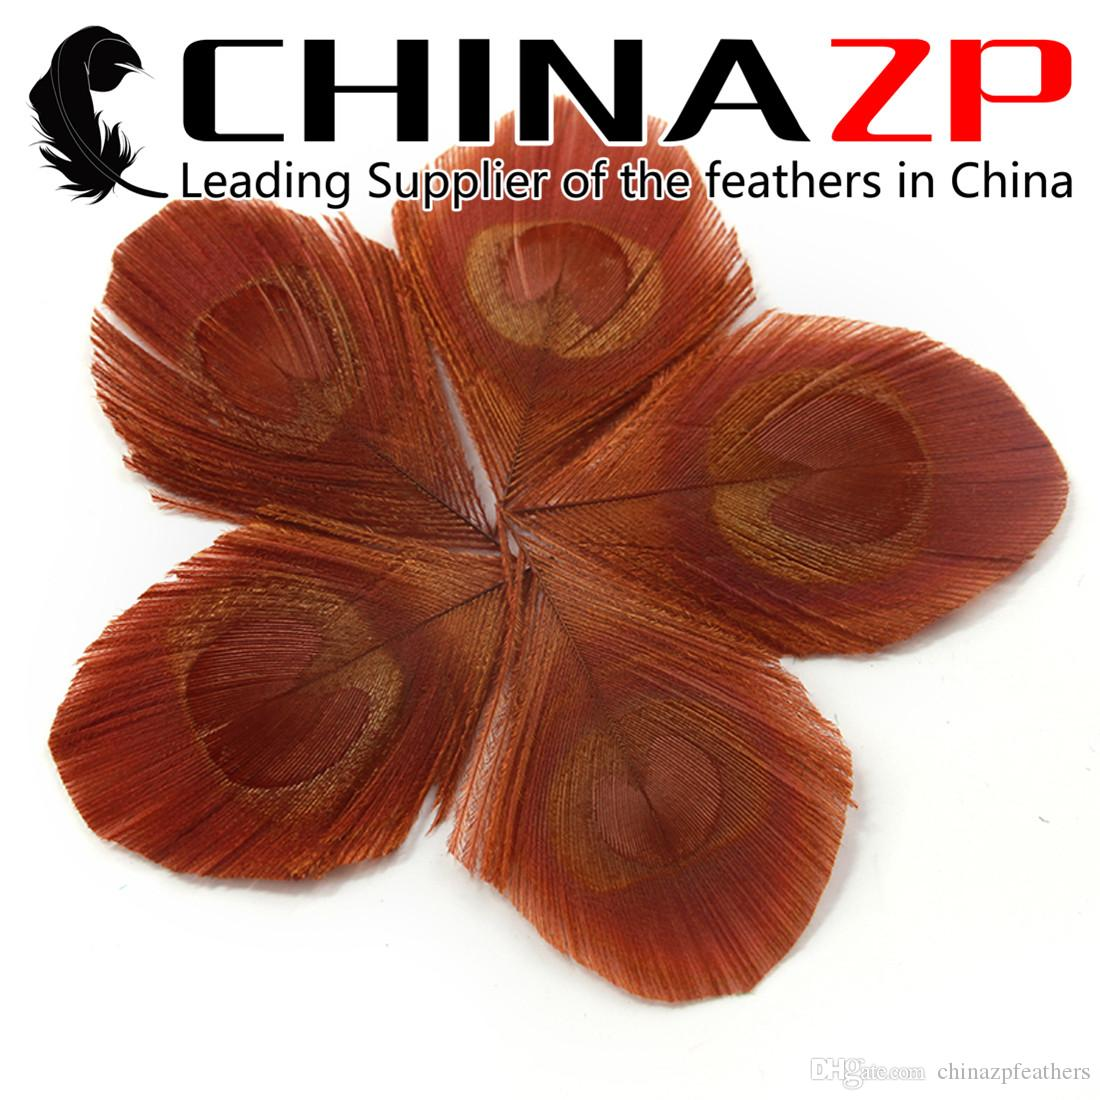 Leading Supplier CHINAZP Factory 100pcs/color/lot Best Quality Dyed Colorful Big Eye Trimmed Peacock Feathers DIY Decorations